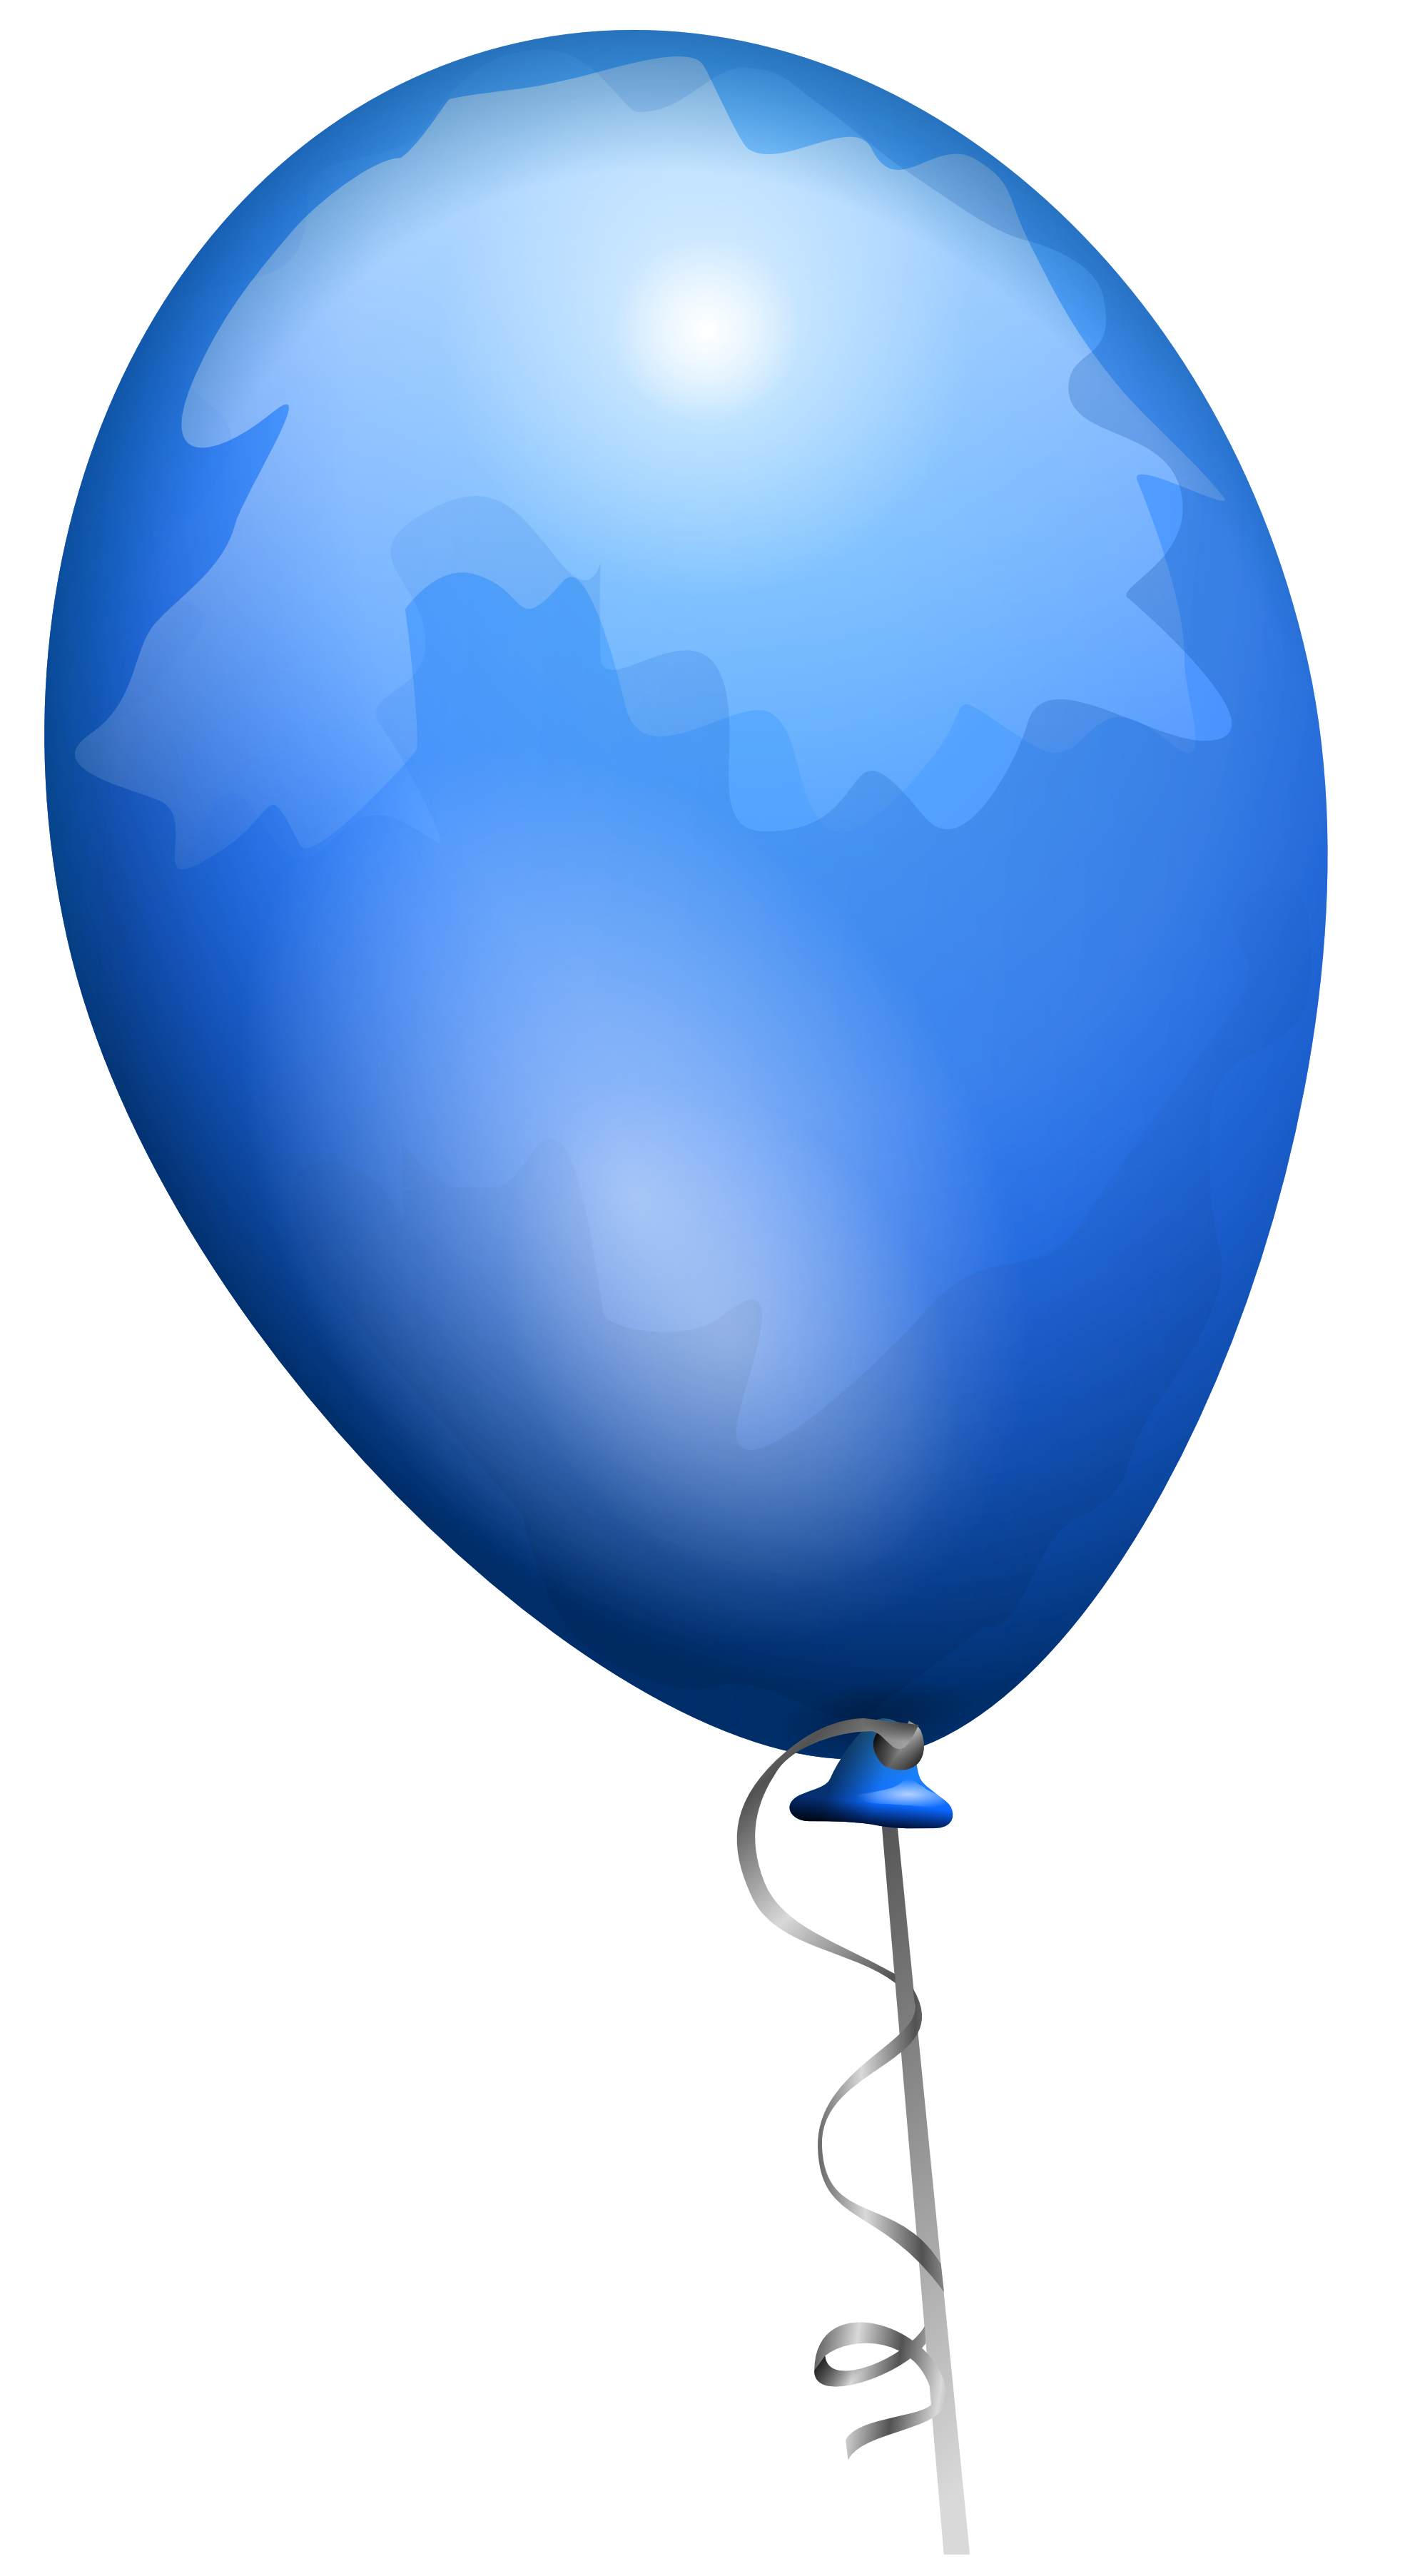 Red balloon PNG image, free download